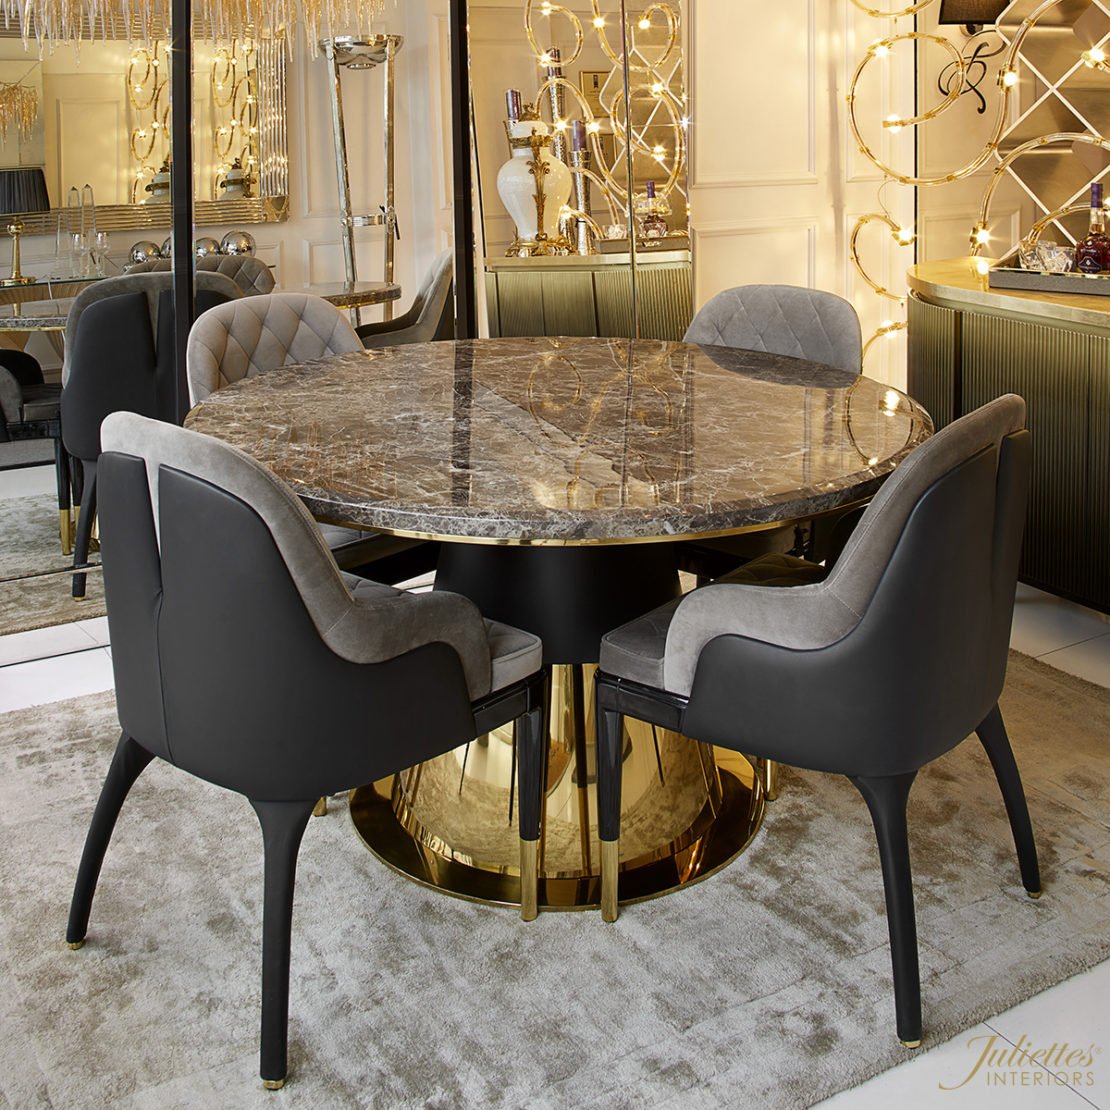 Black and gold small round dining table with dark faux marble top